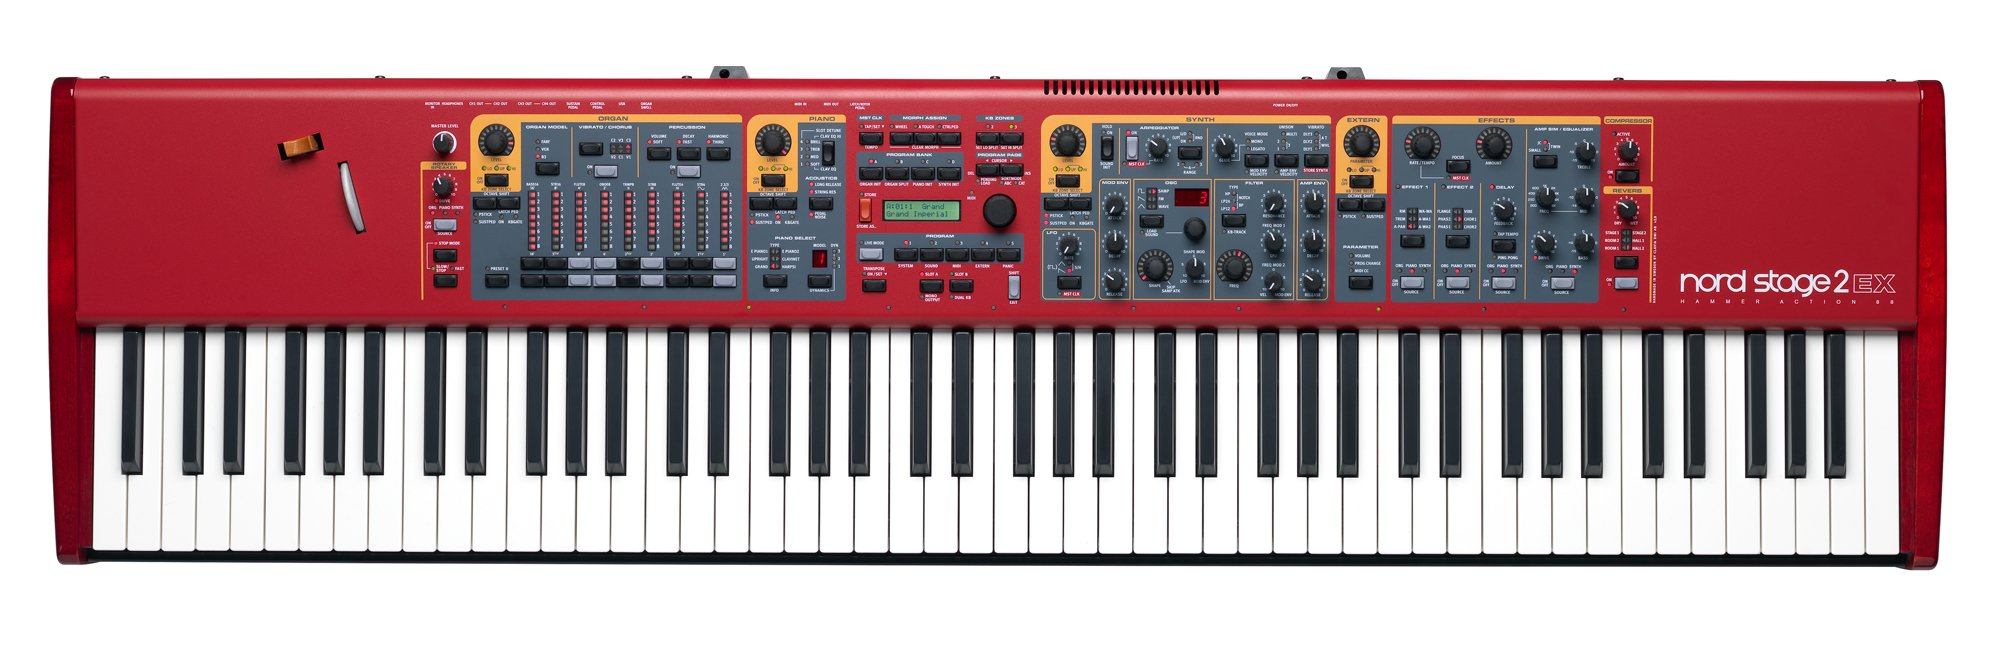 Nord Stage 2 EX 88-Key Hammer Action Keybed With LED Drawbars, A-C Key Range (NSTAGE2-EX-88)